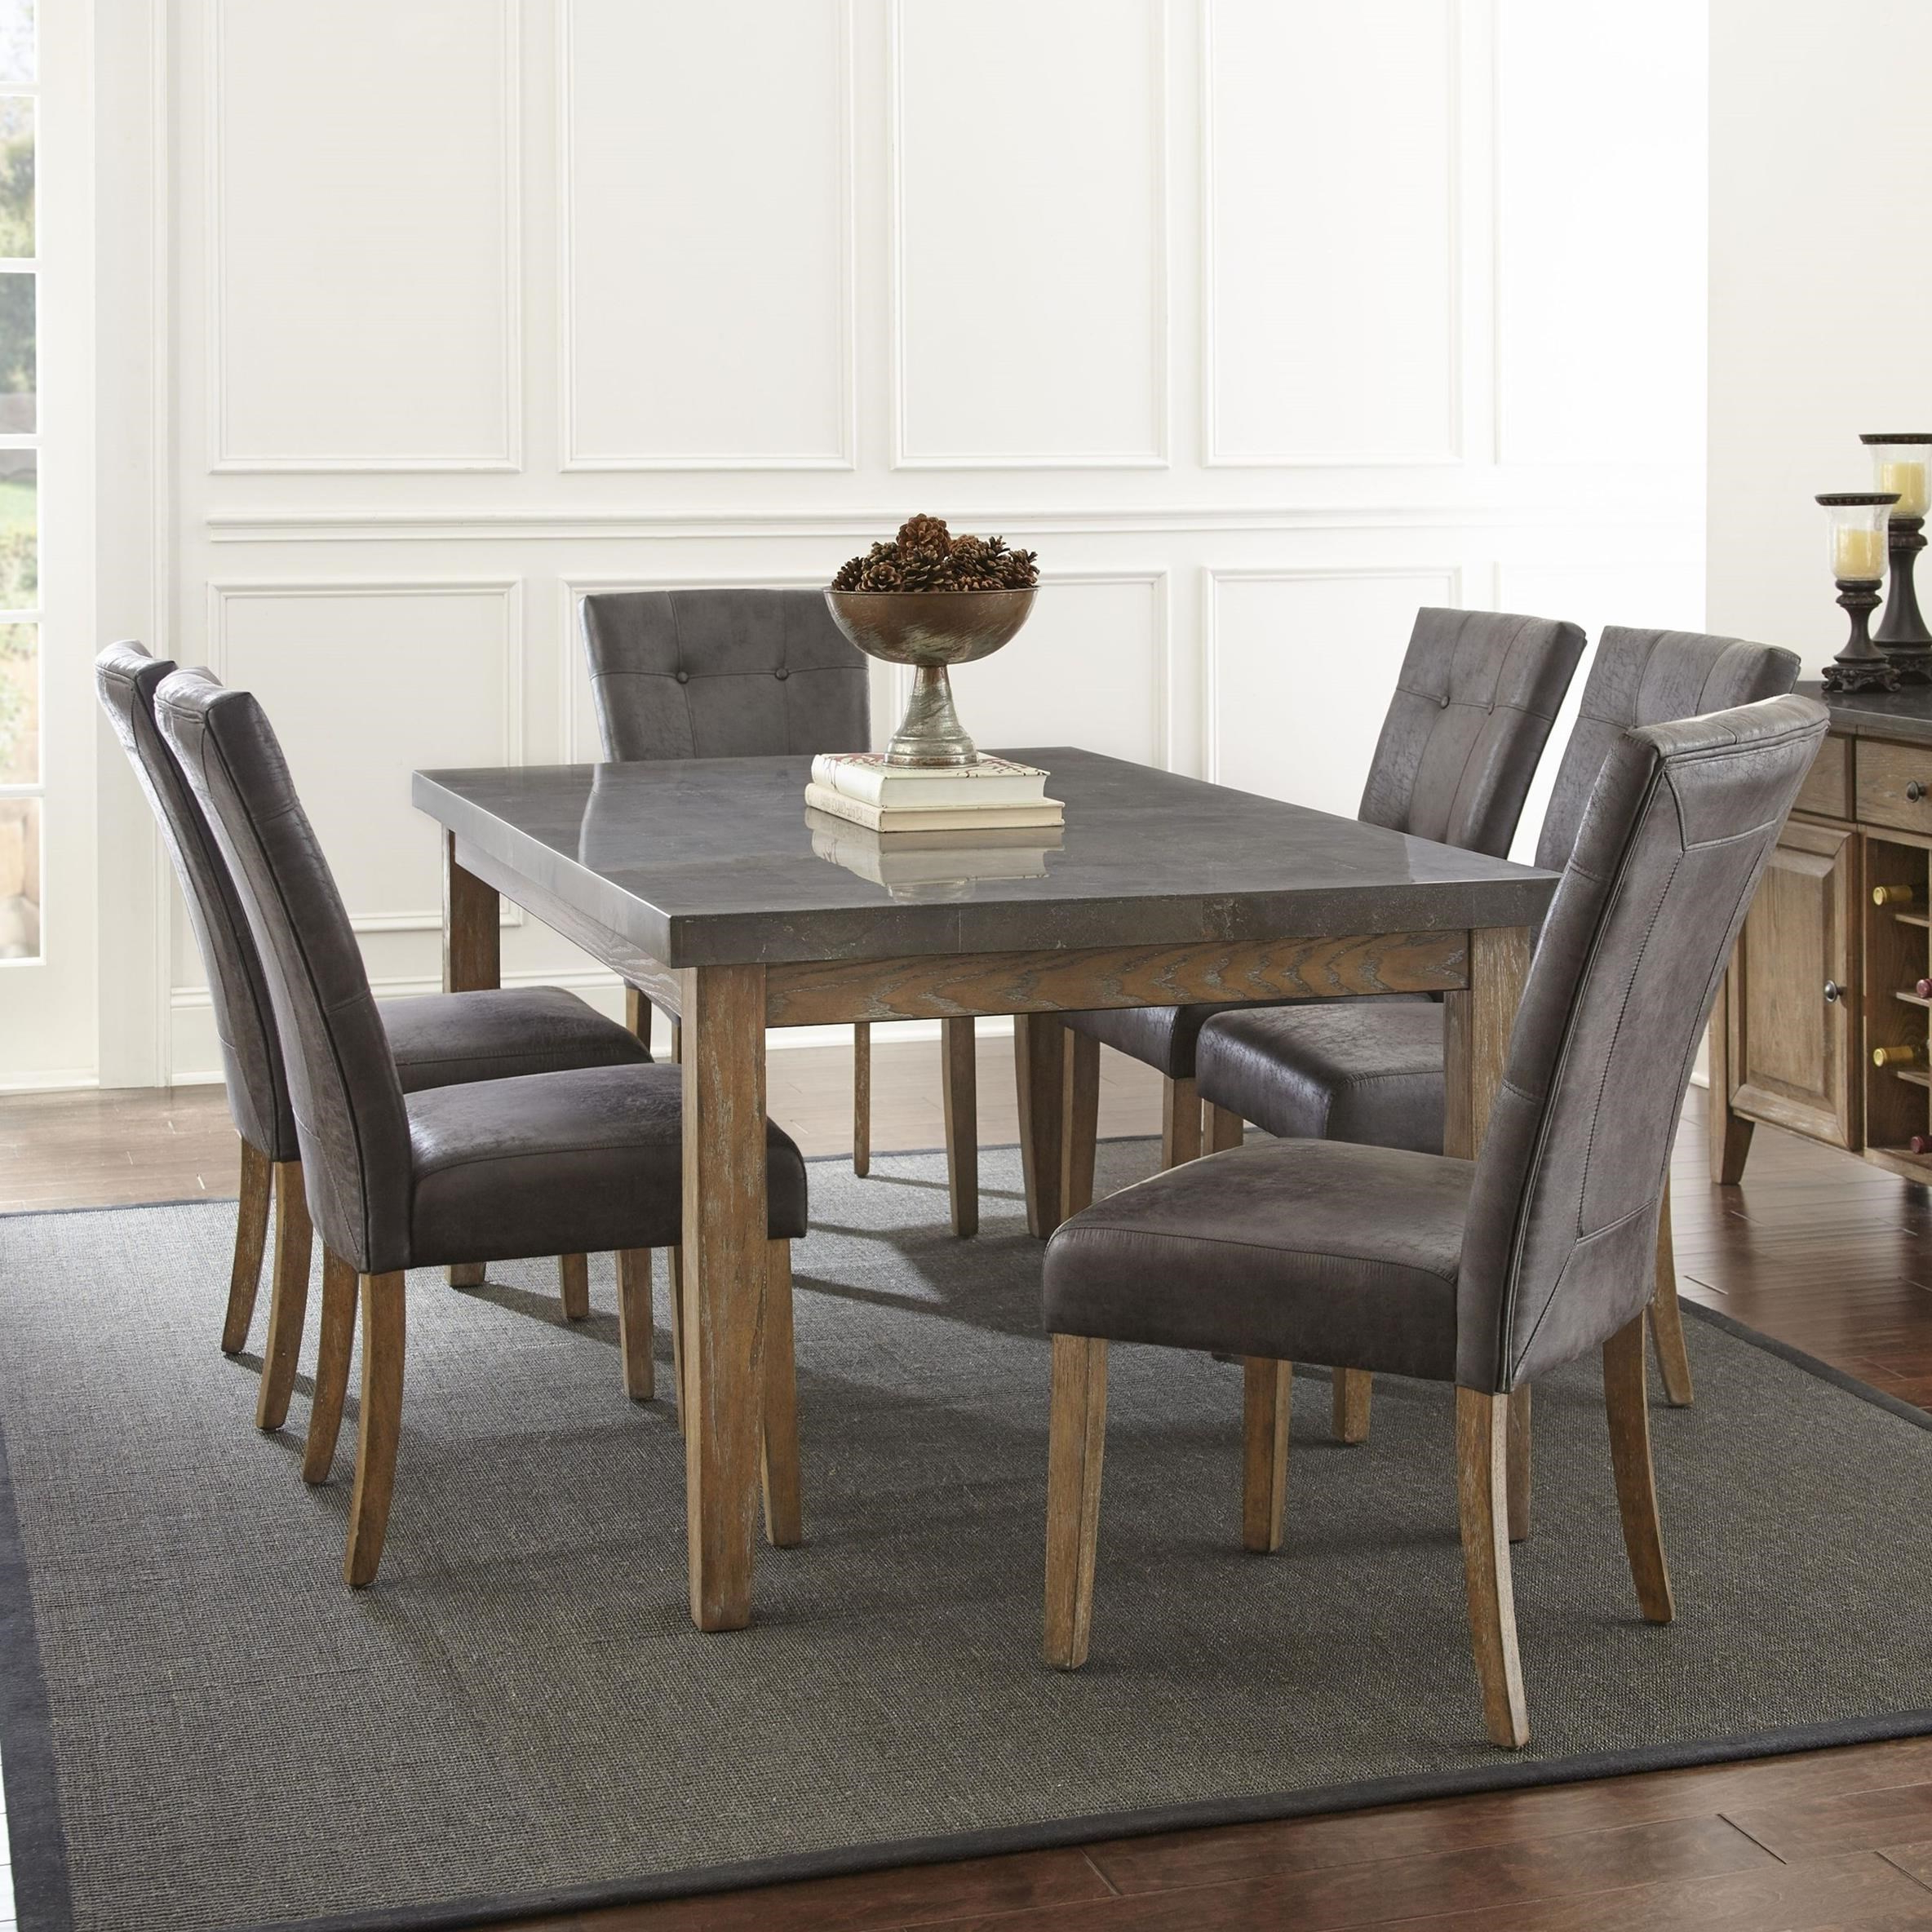 Best And Newest Debby Small Space 3 Piece Dining Sets With Debby 7 Piece Transitional Table And Chair Set With Bluestone Topsteve  Silver At Wayside Furniture (View 2 of 25)